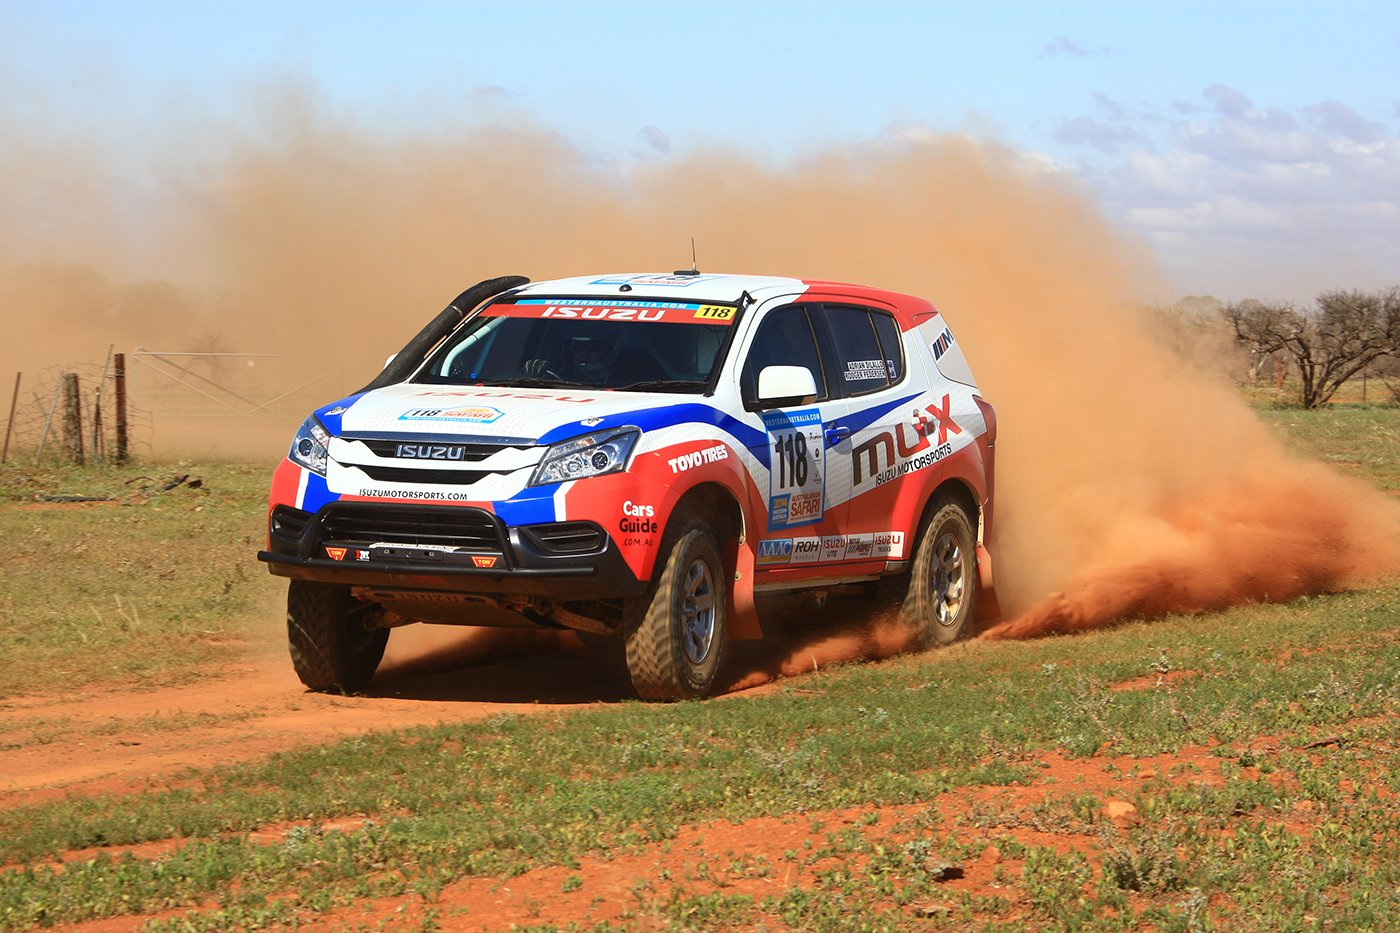 Subaru Models 2015 >> Isuzu MU-X engineered in Sydney for Dakar Rally in 2015 - photos | CarAdvice